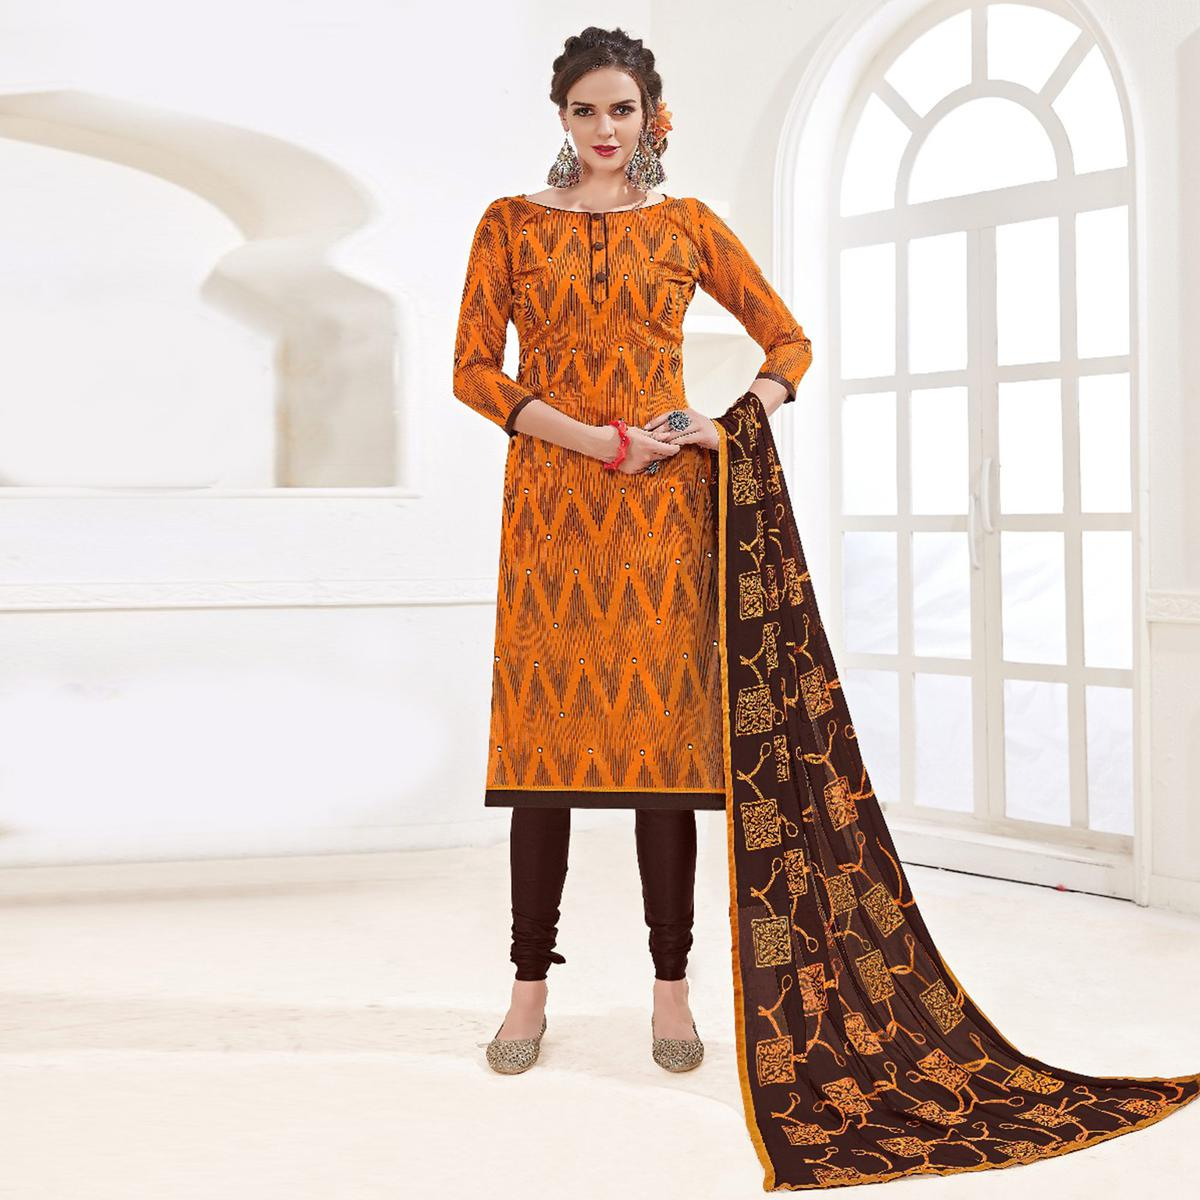 Classy Orange-Brown Colored Mirror Worked Chanderi Silk Dress Material